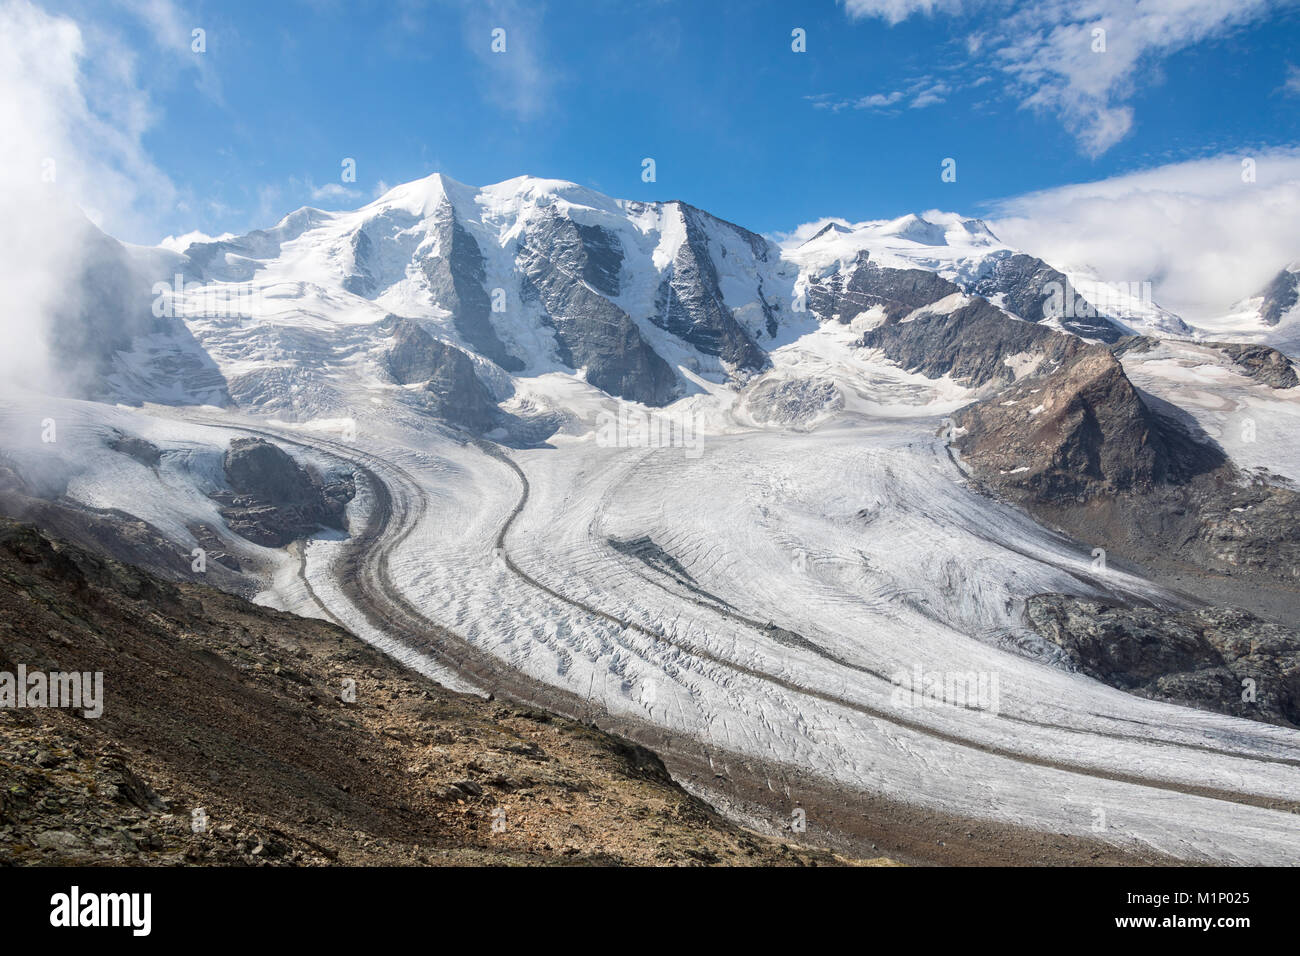 Overview of the Diavolezza and Pers glaciers, St. Moritz, canton of Graubunden, Engadine, Switzerland, Europe - Stock Image